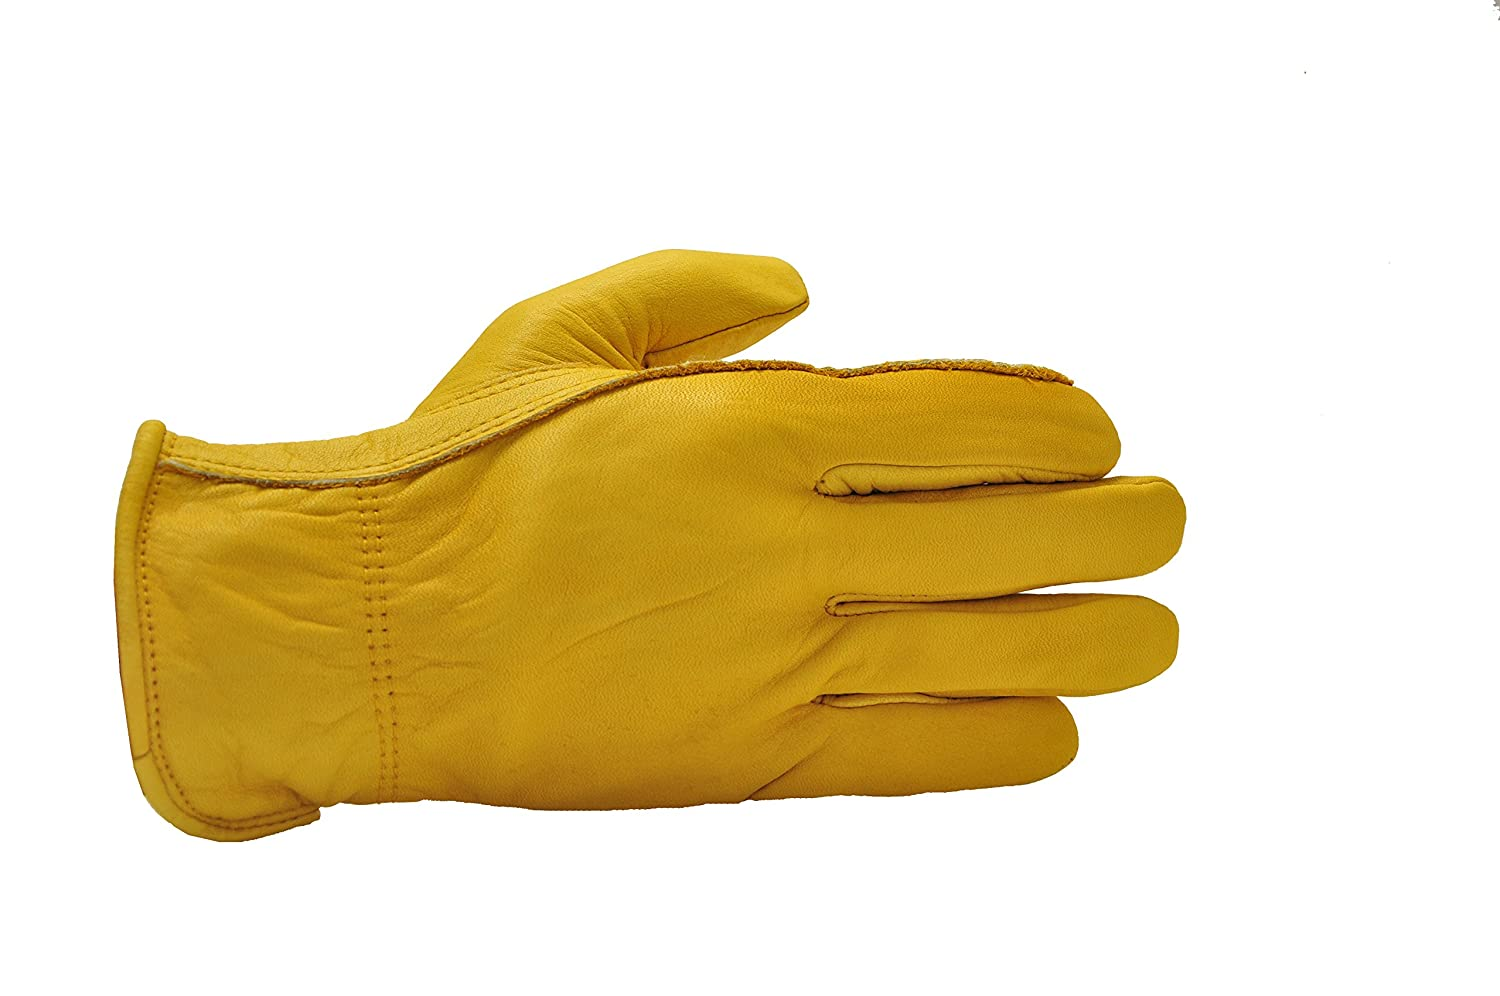 Large Orange GF Gloves 6203L-12 Premium Genuine Grain Cowhide Leather Gloves with Reinforced Patch Palm Pack of 12